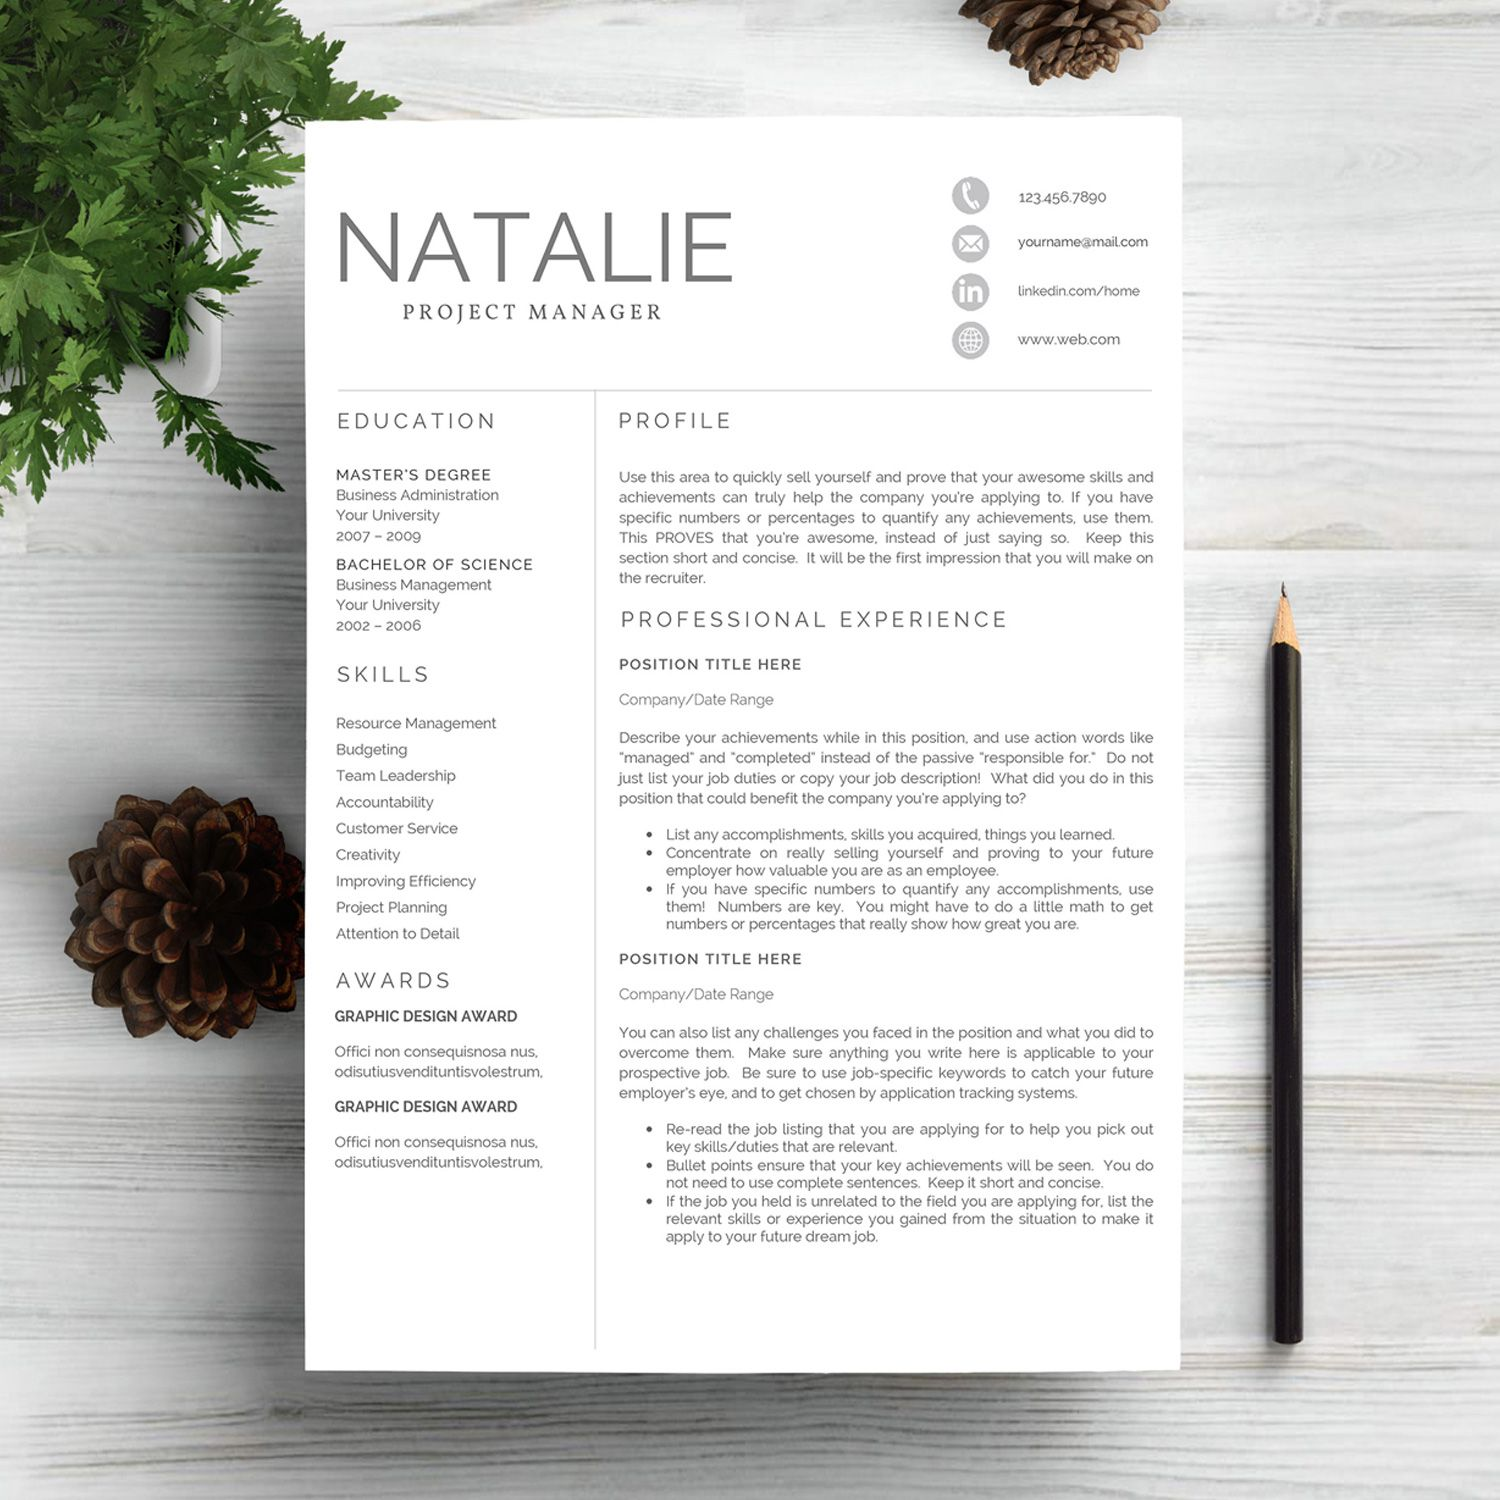 Professional resume template for project manager resume template professional resume template for project manager yelopaper